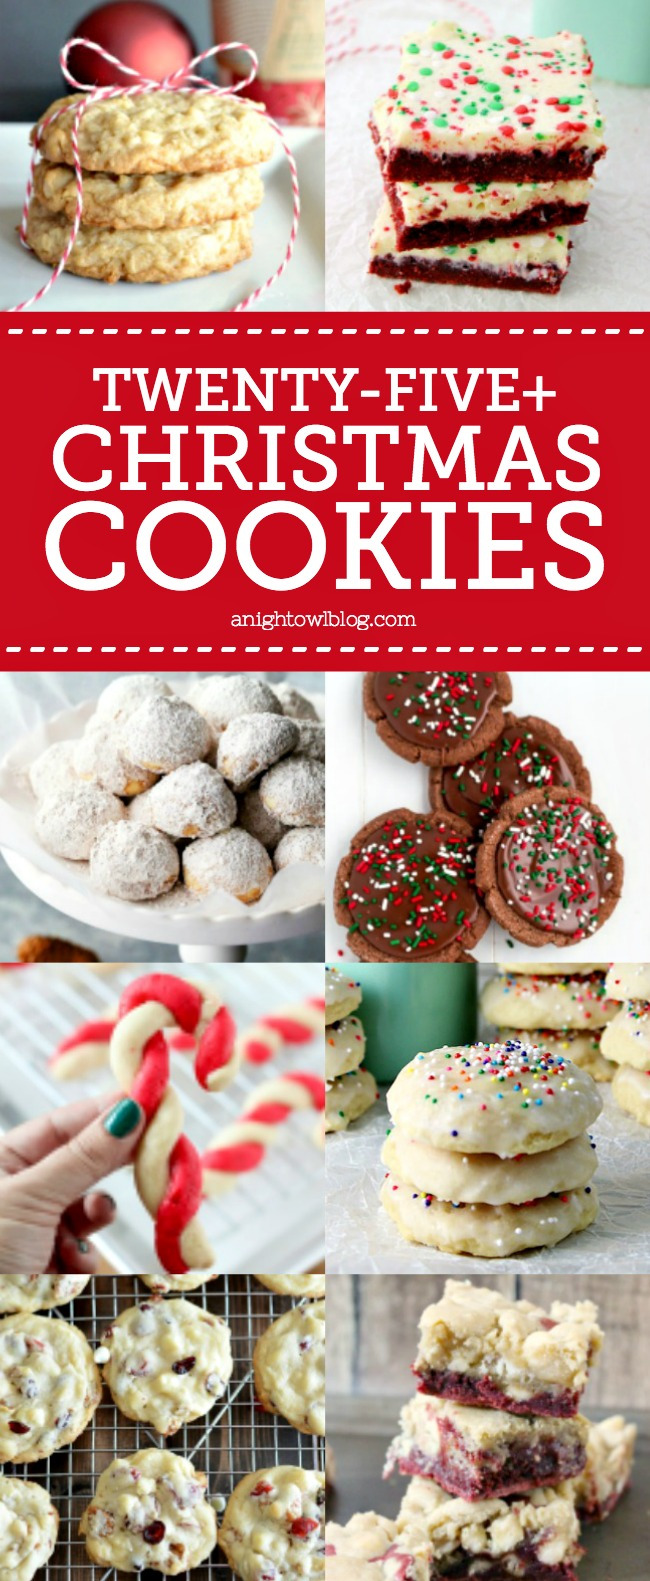 From snowballs to snickerdoodles, check out this amazing list of 25+ must-have Christmas Cookie Recipes!